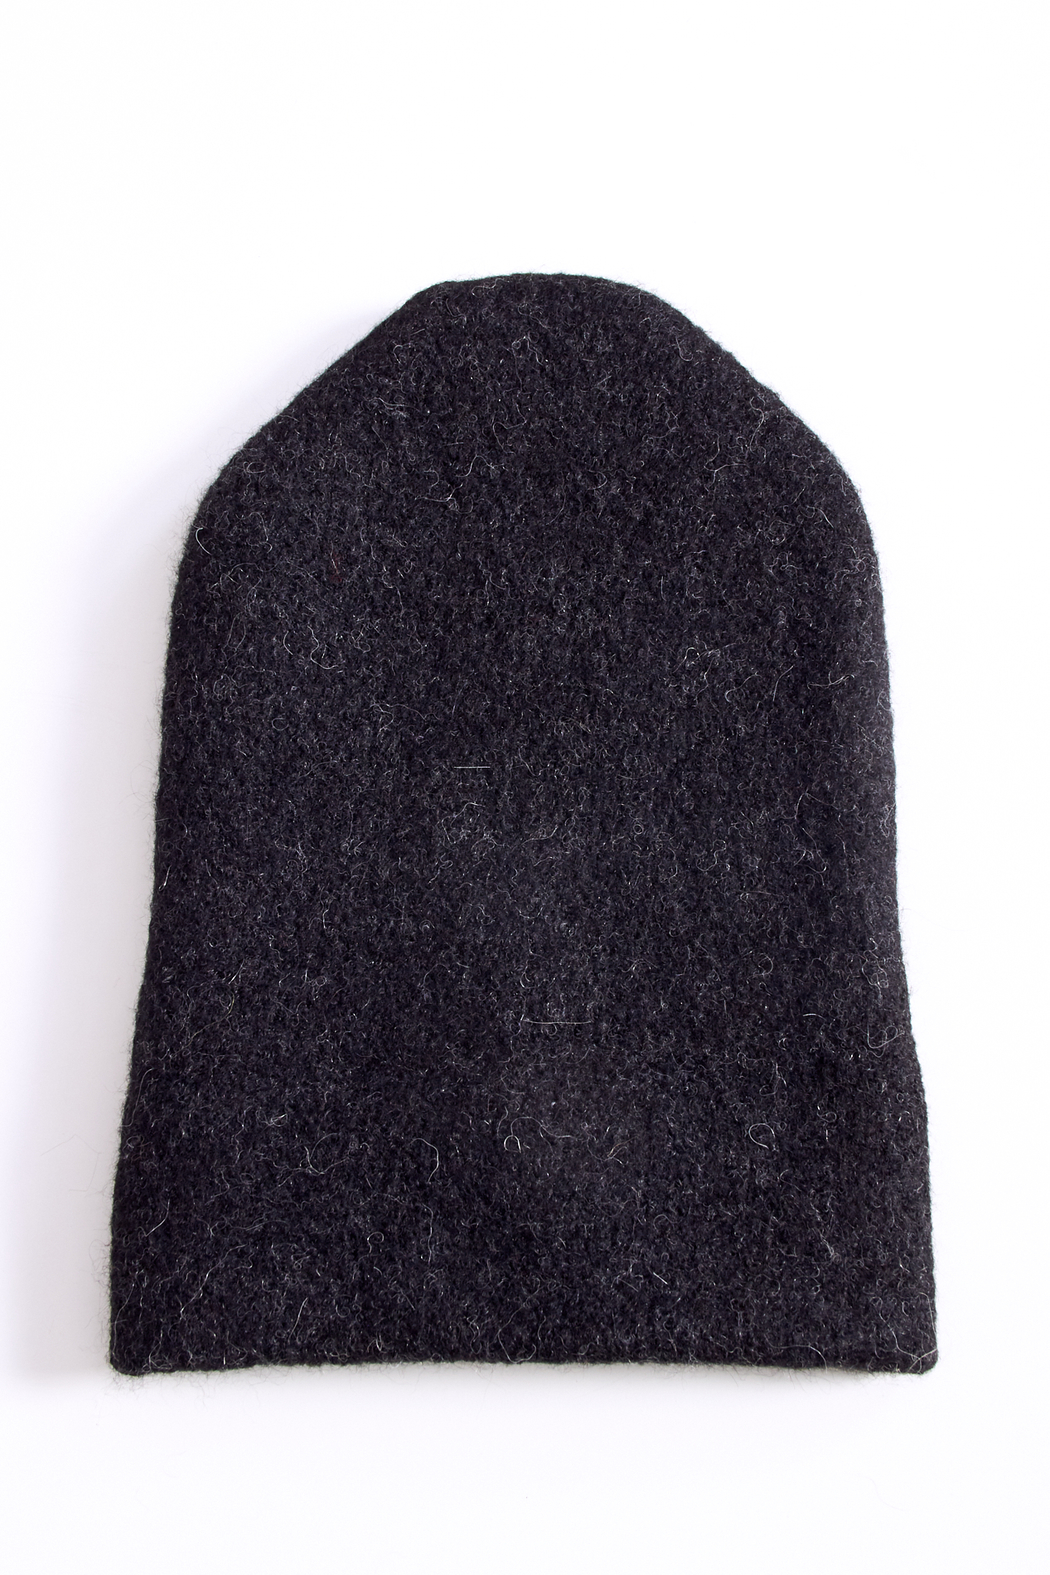 a44a27b3224 Lauren Manoogian Carpenter Hat from West Village by PERSONNEL of New ...